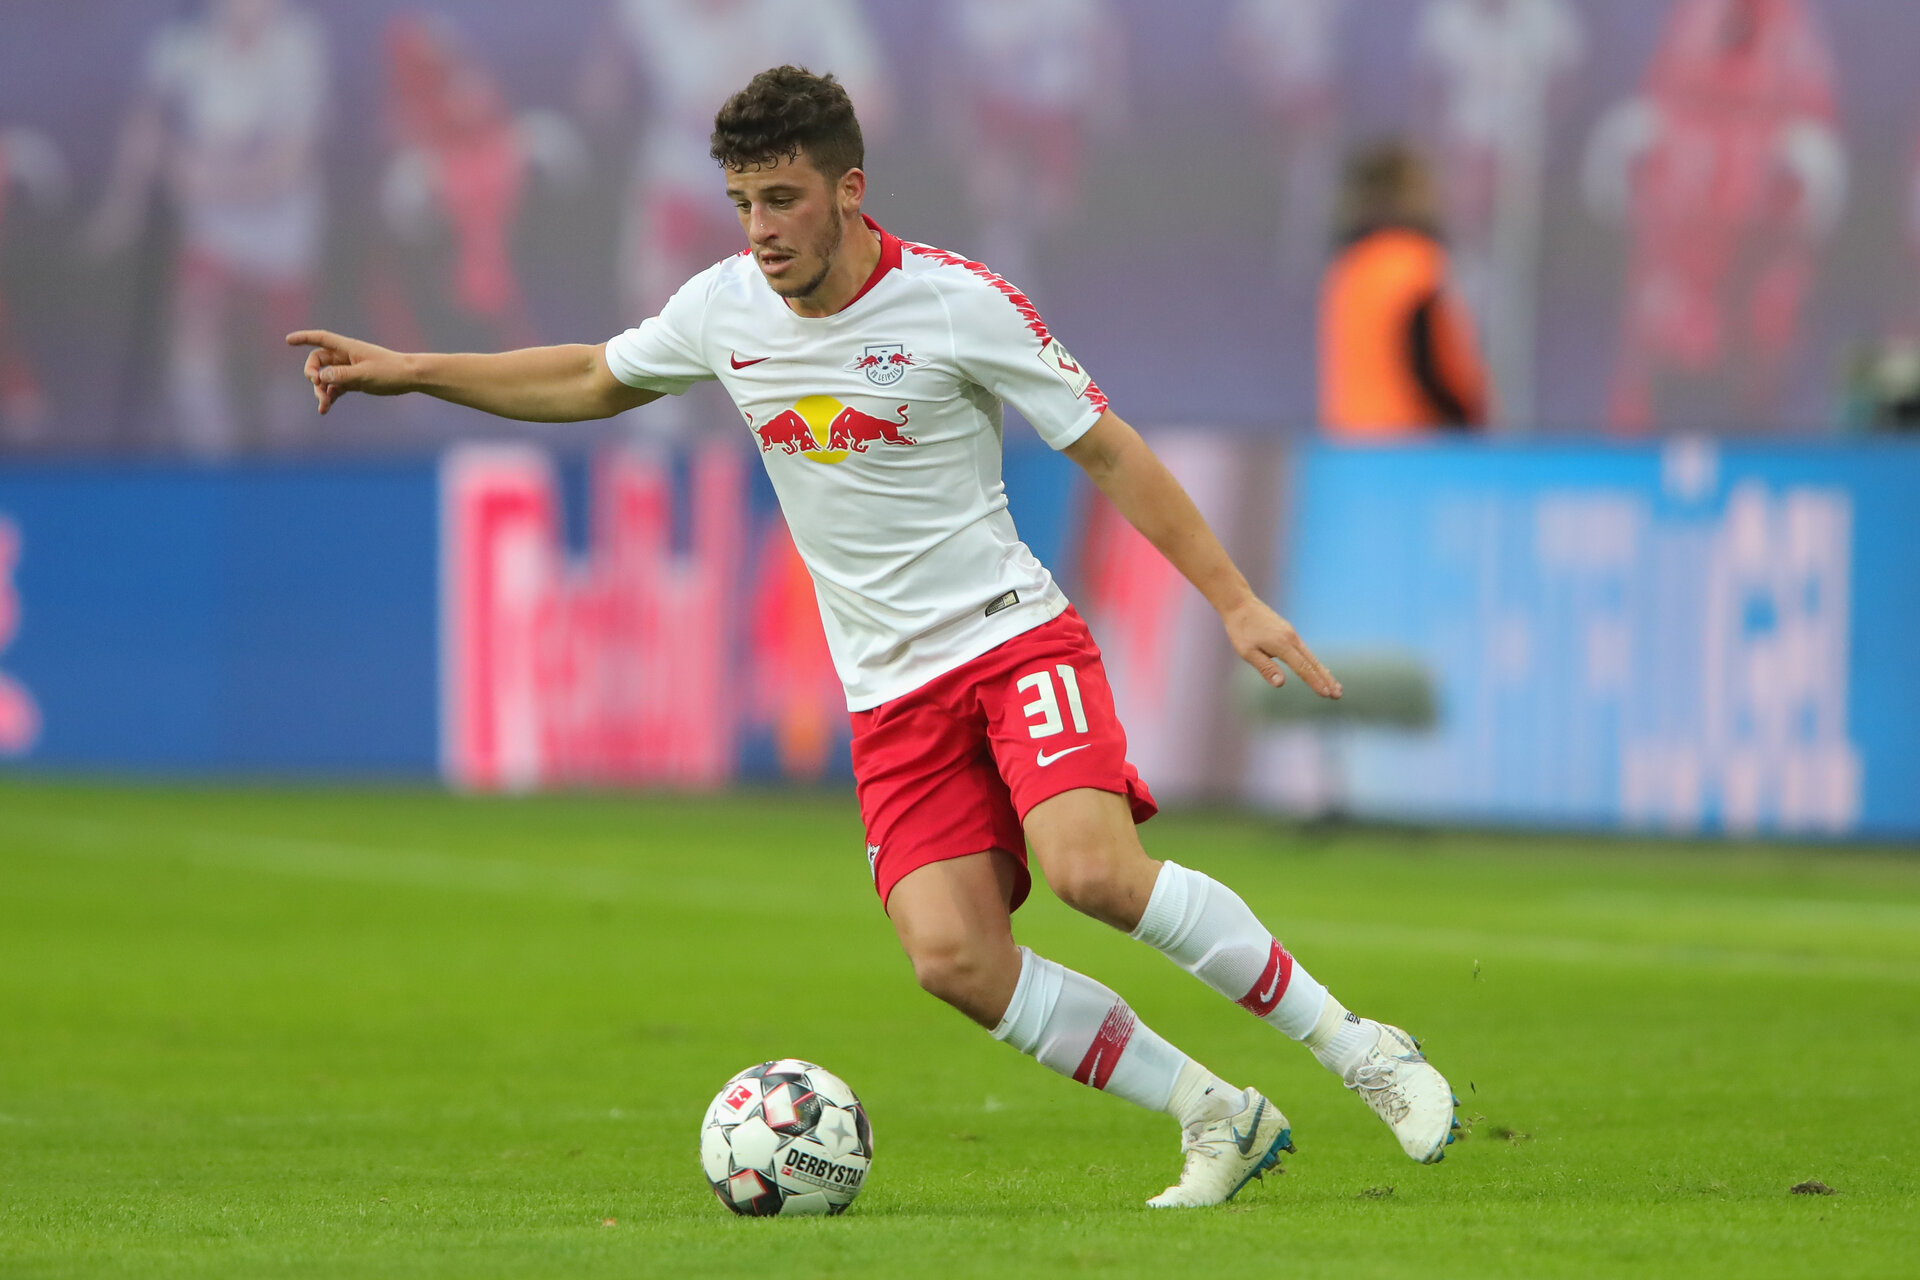 LEIPZIG, GERMANY - NOVEMBER 11:  Diego Demme of Leipzig runs with the ball during the Bundesliga match between RB Leipzig and Bayer 04 Leverkusen at Red Bull Arena on November 11, 2018 in Leipzig, Germany.  (Photo by Alexander Hassenstein/Bongarts/Getty Images)